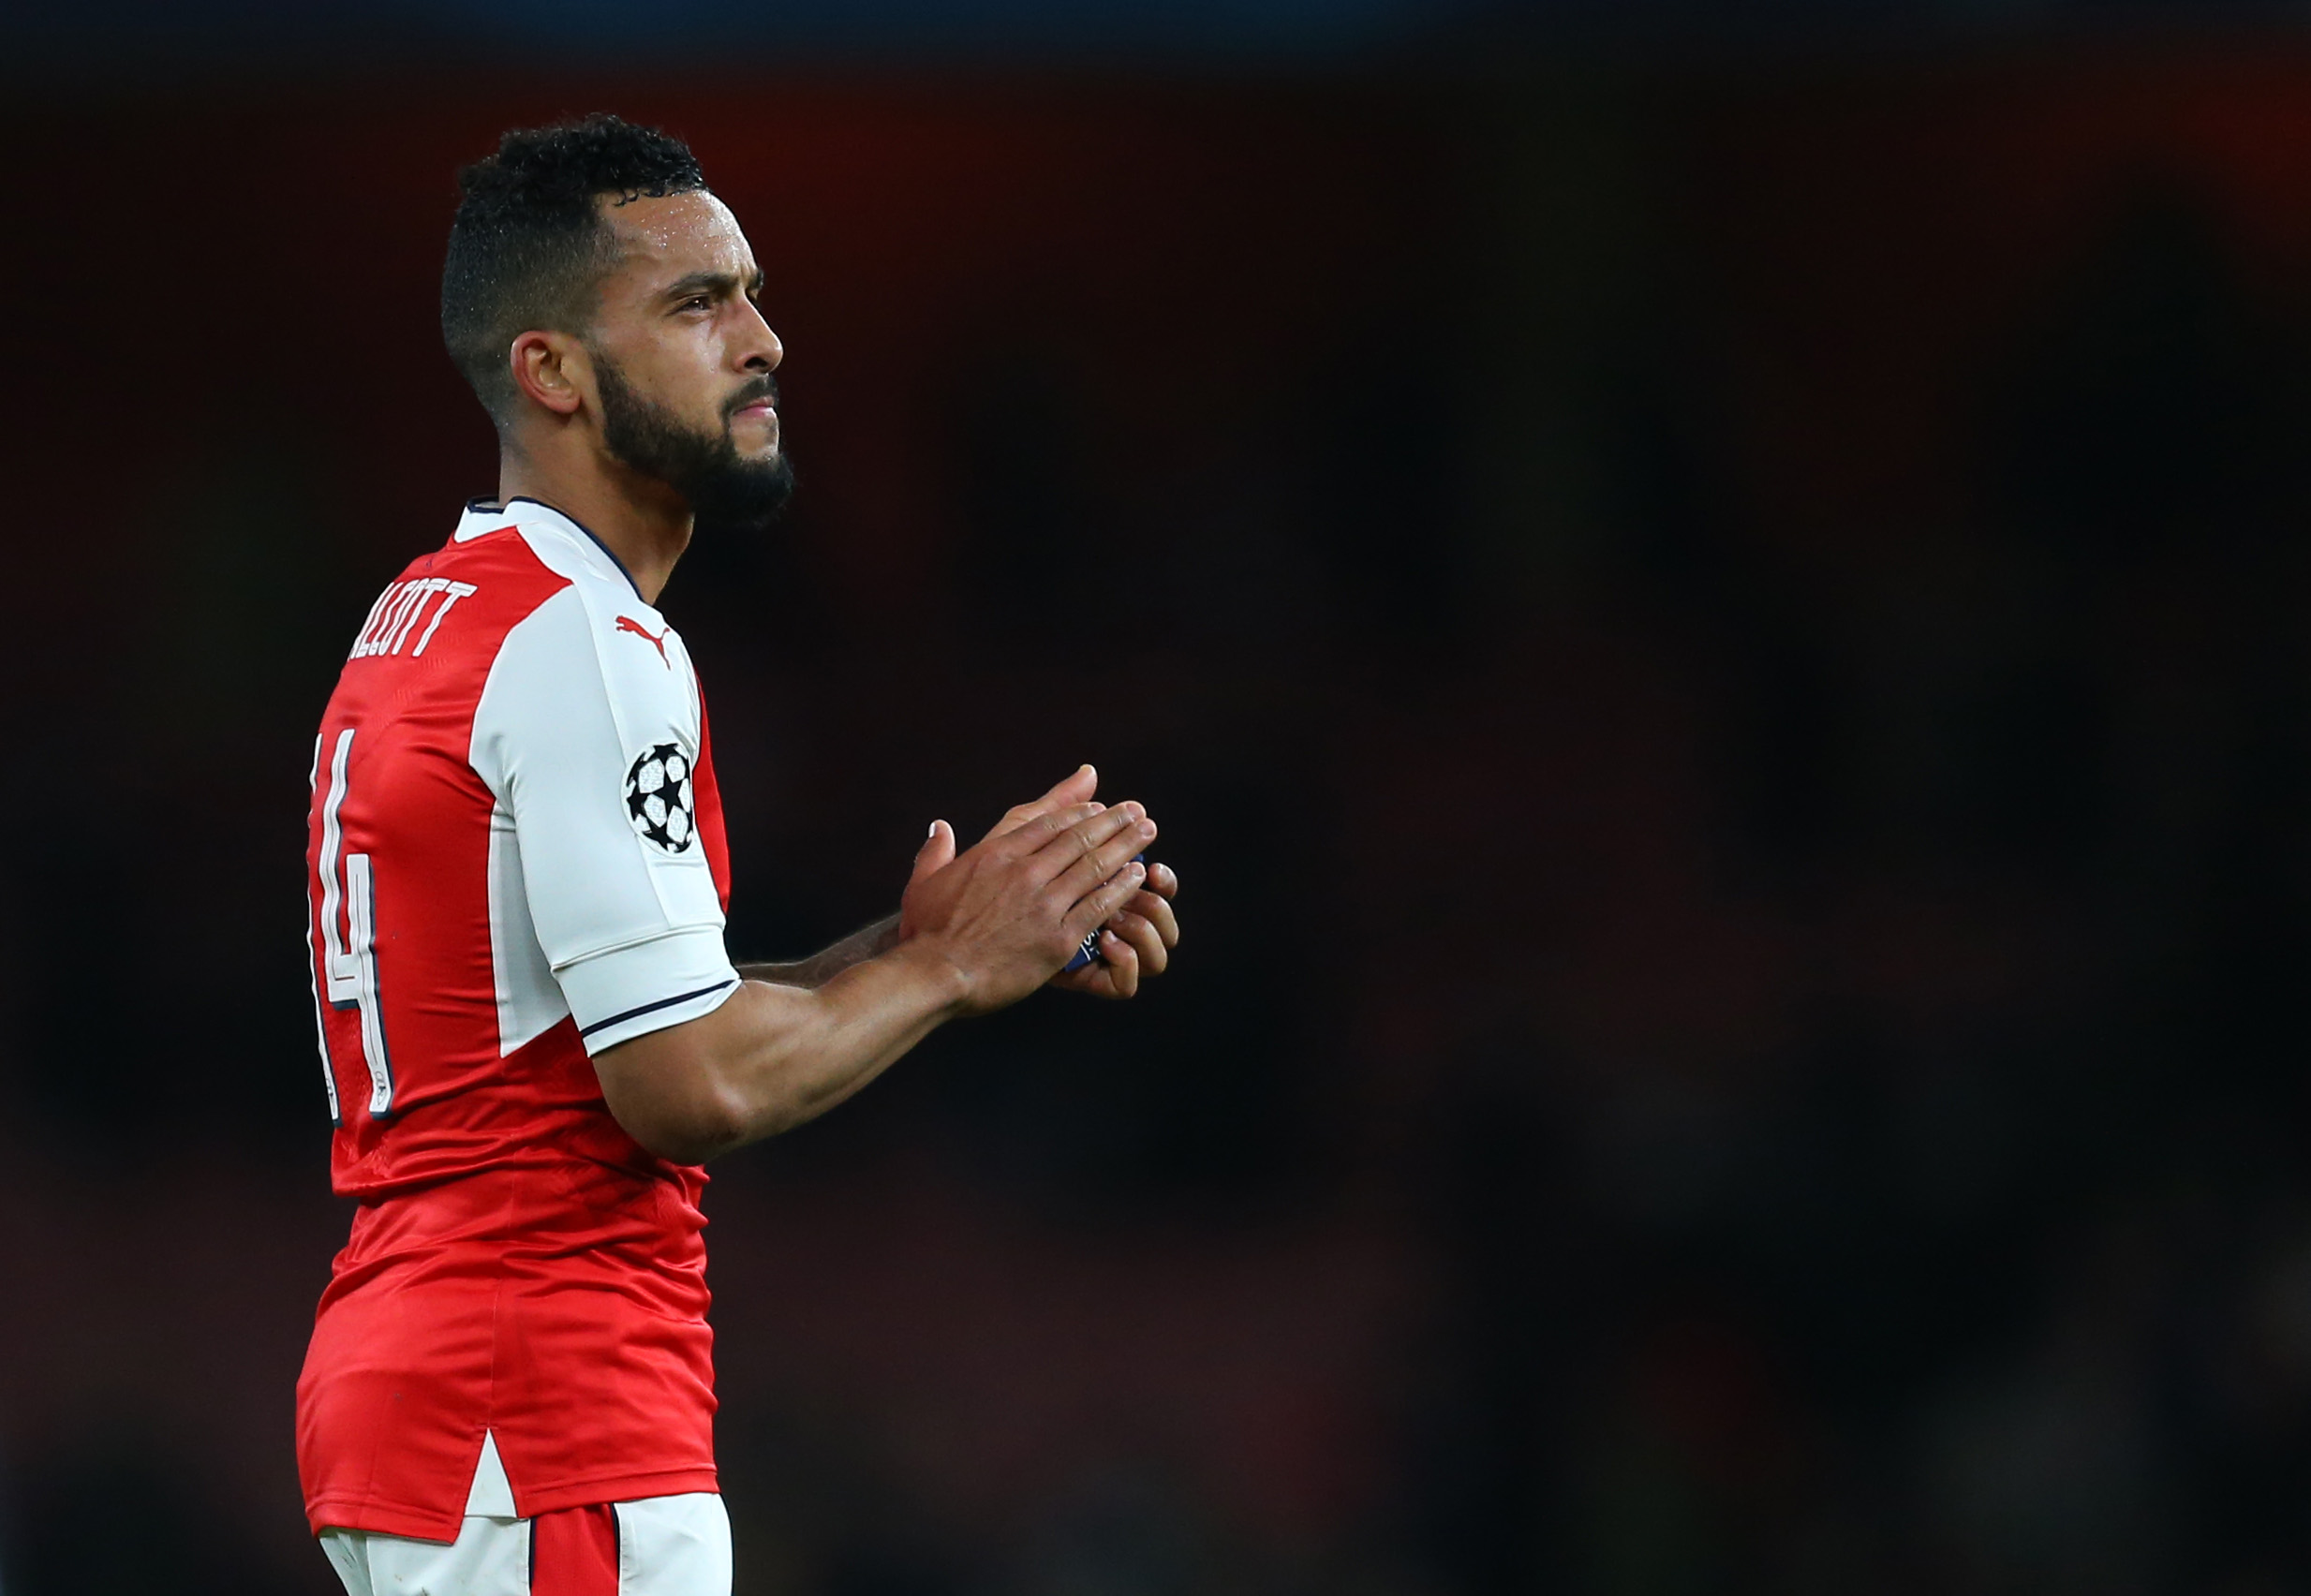 Theo Walcott's Arsenal form improved after nailing down wing role, says Arsene Wenger